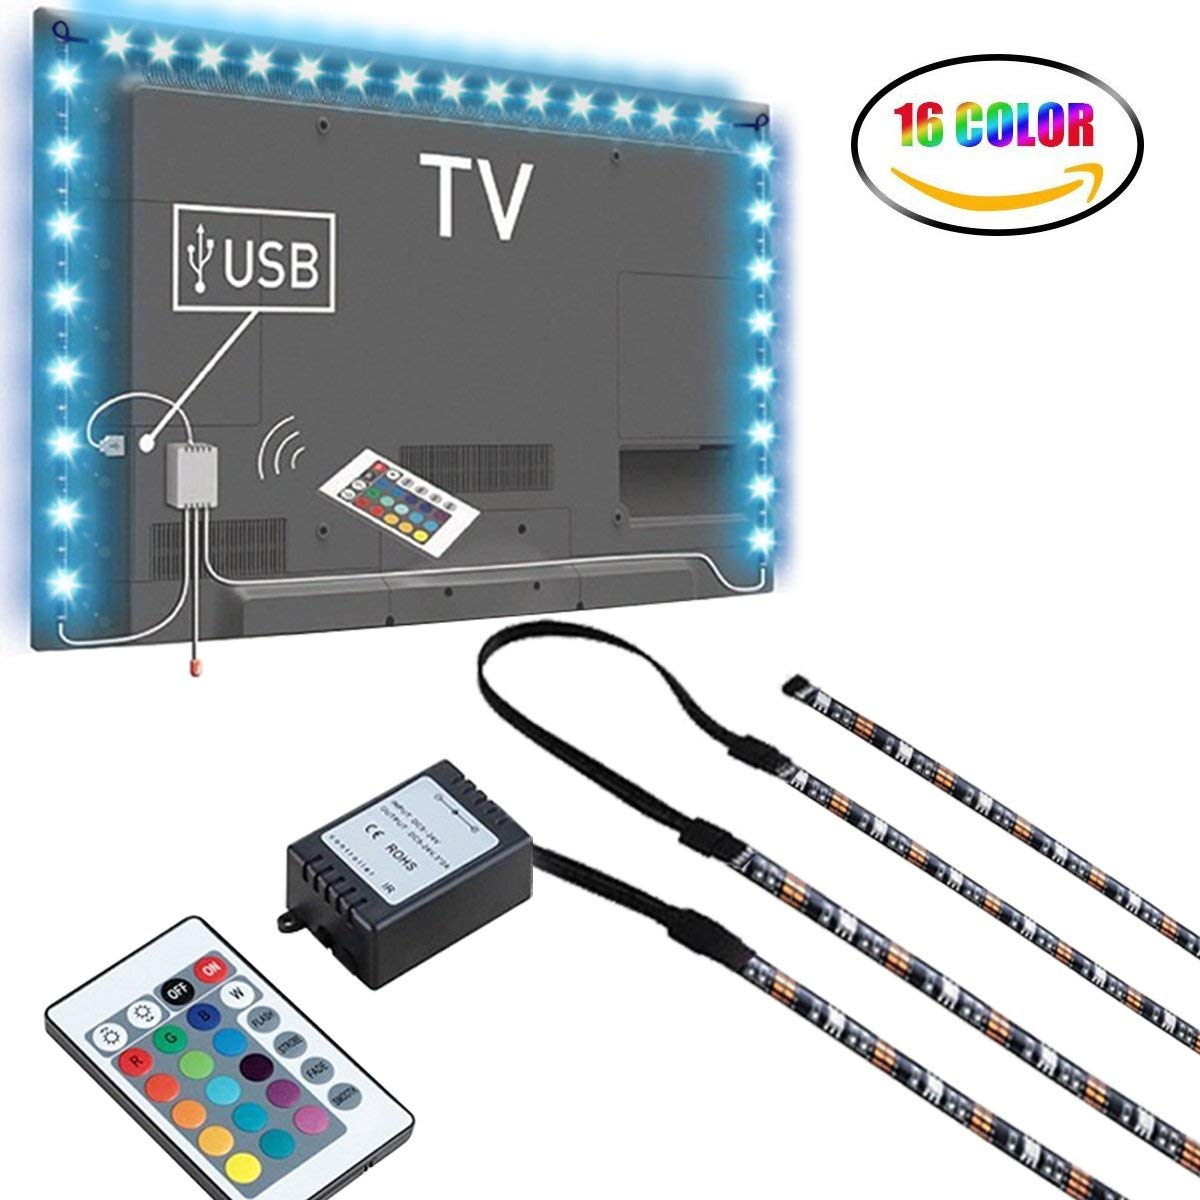 LED TV Backlight, 2M USB Bias Lighting With 16 Colors And 4 Dynamic Mode For 40 To 60 Inch HDTV,PC Monitor,Led Light Strip.(4Pcs X 50Cm Led Strips)